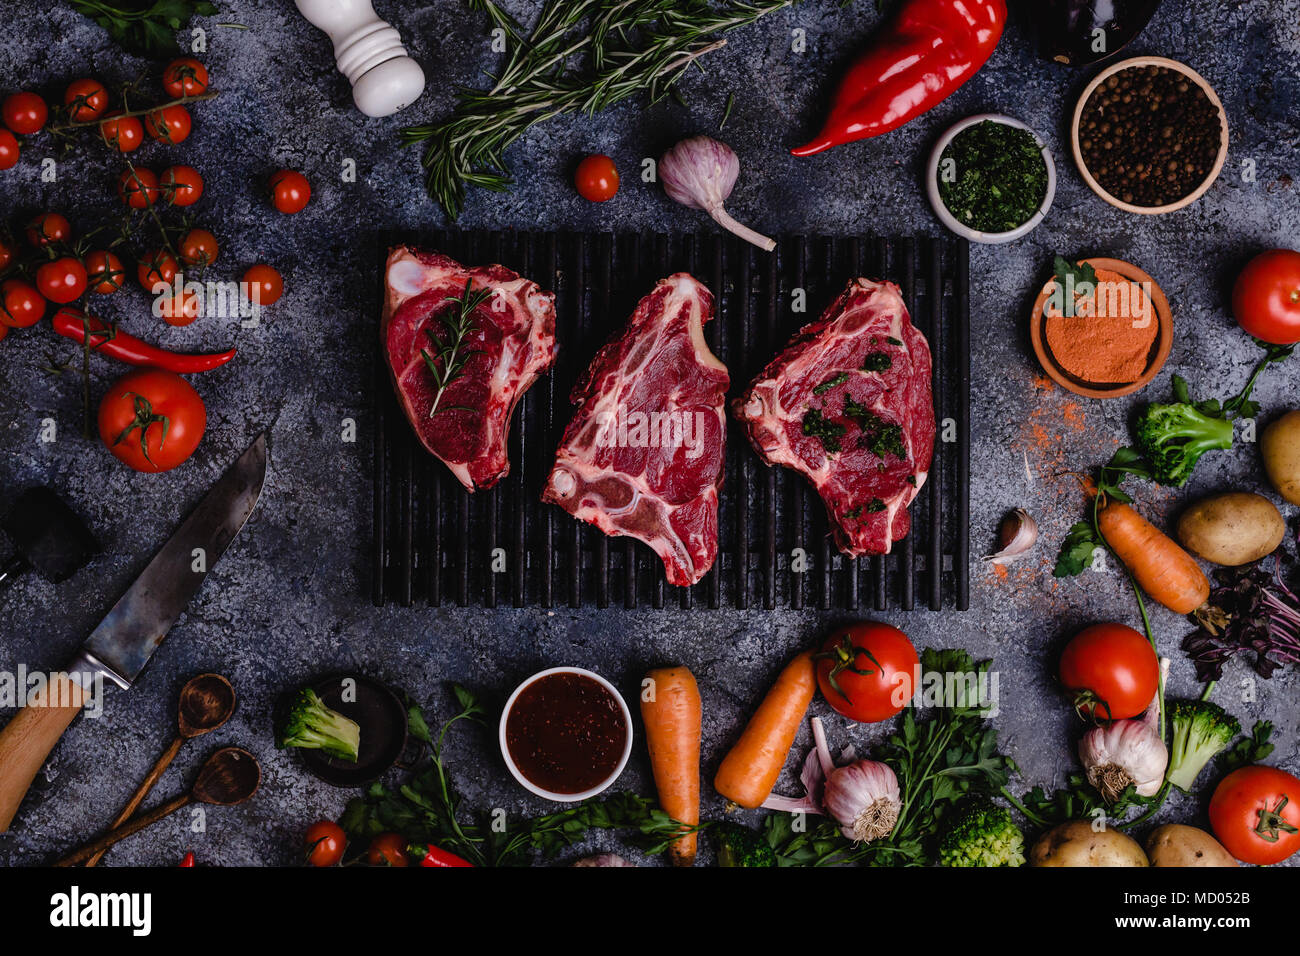 top view of raw meat slices and vegetables on black concrete surface - Stock Image